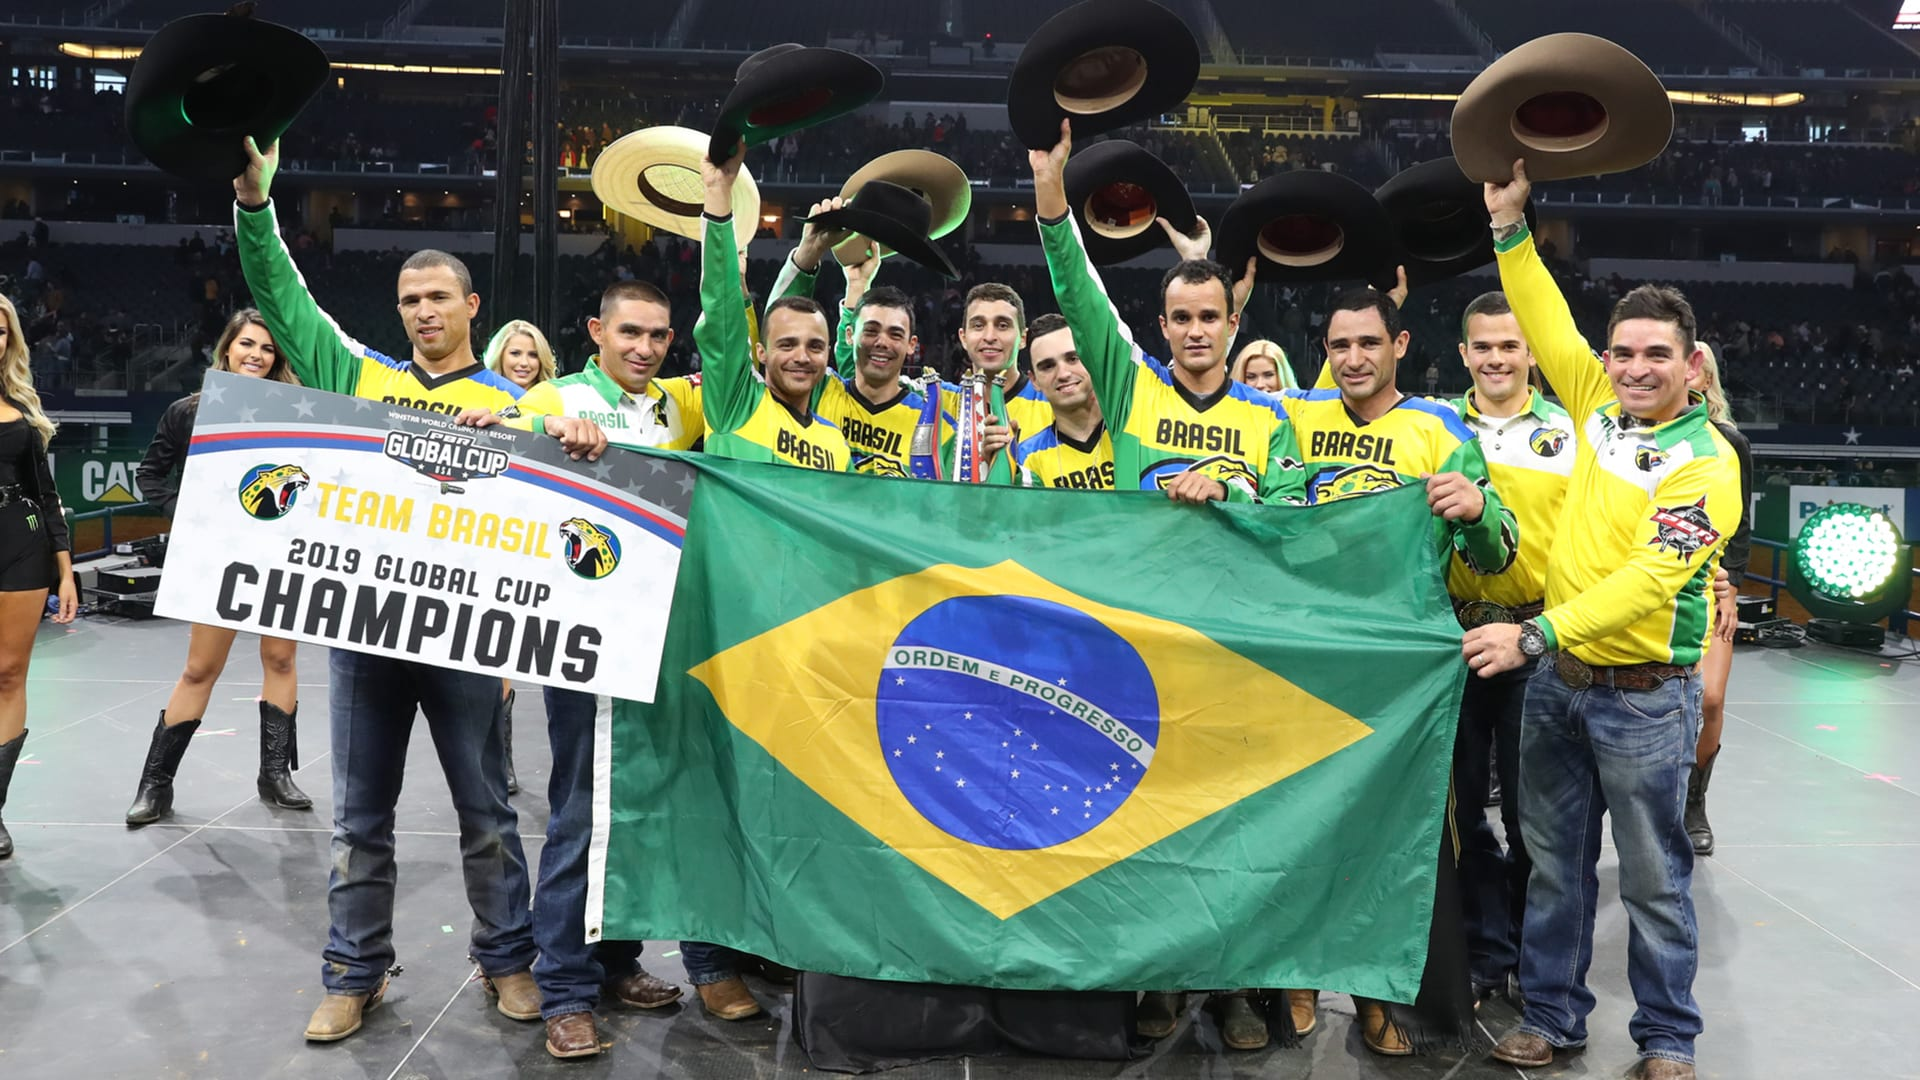 Team Brazil wins 2019 PBR Global Cup USA